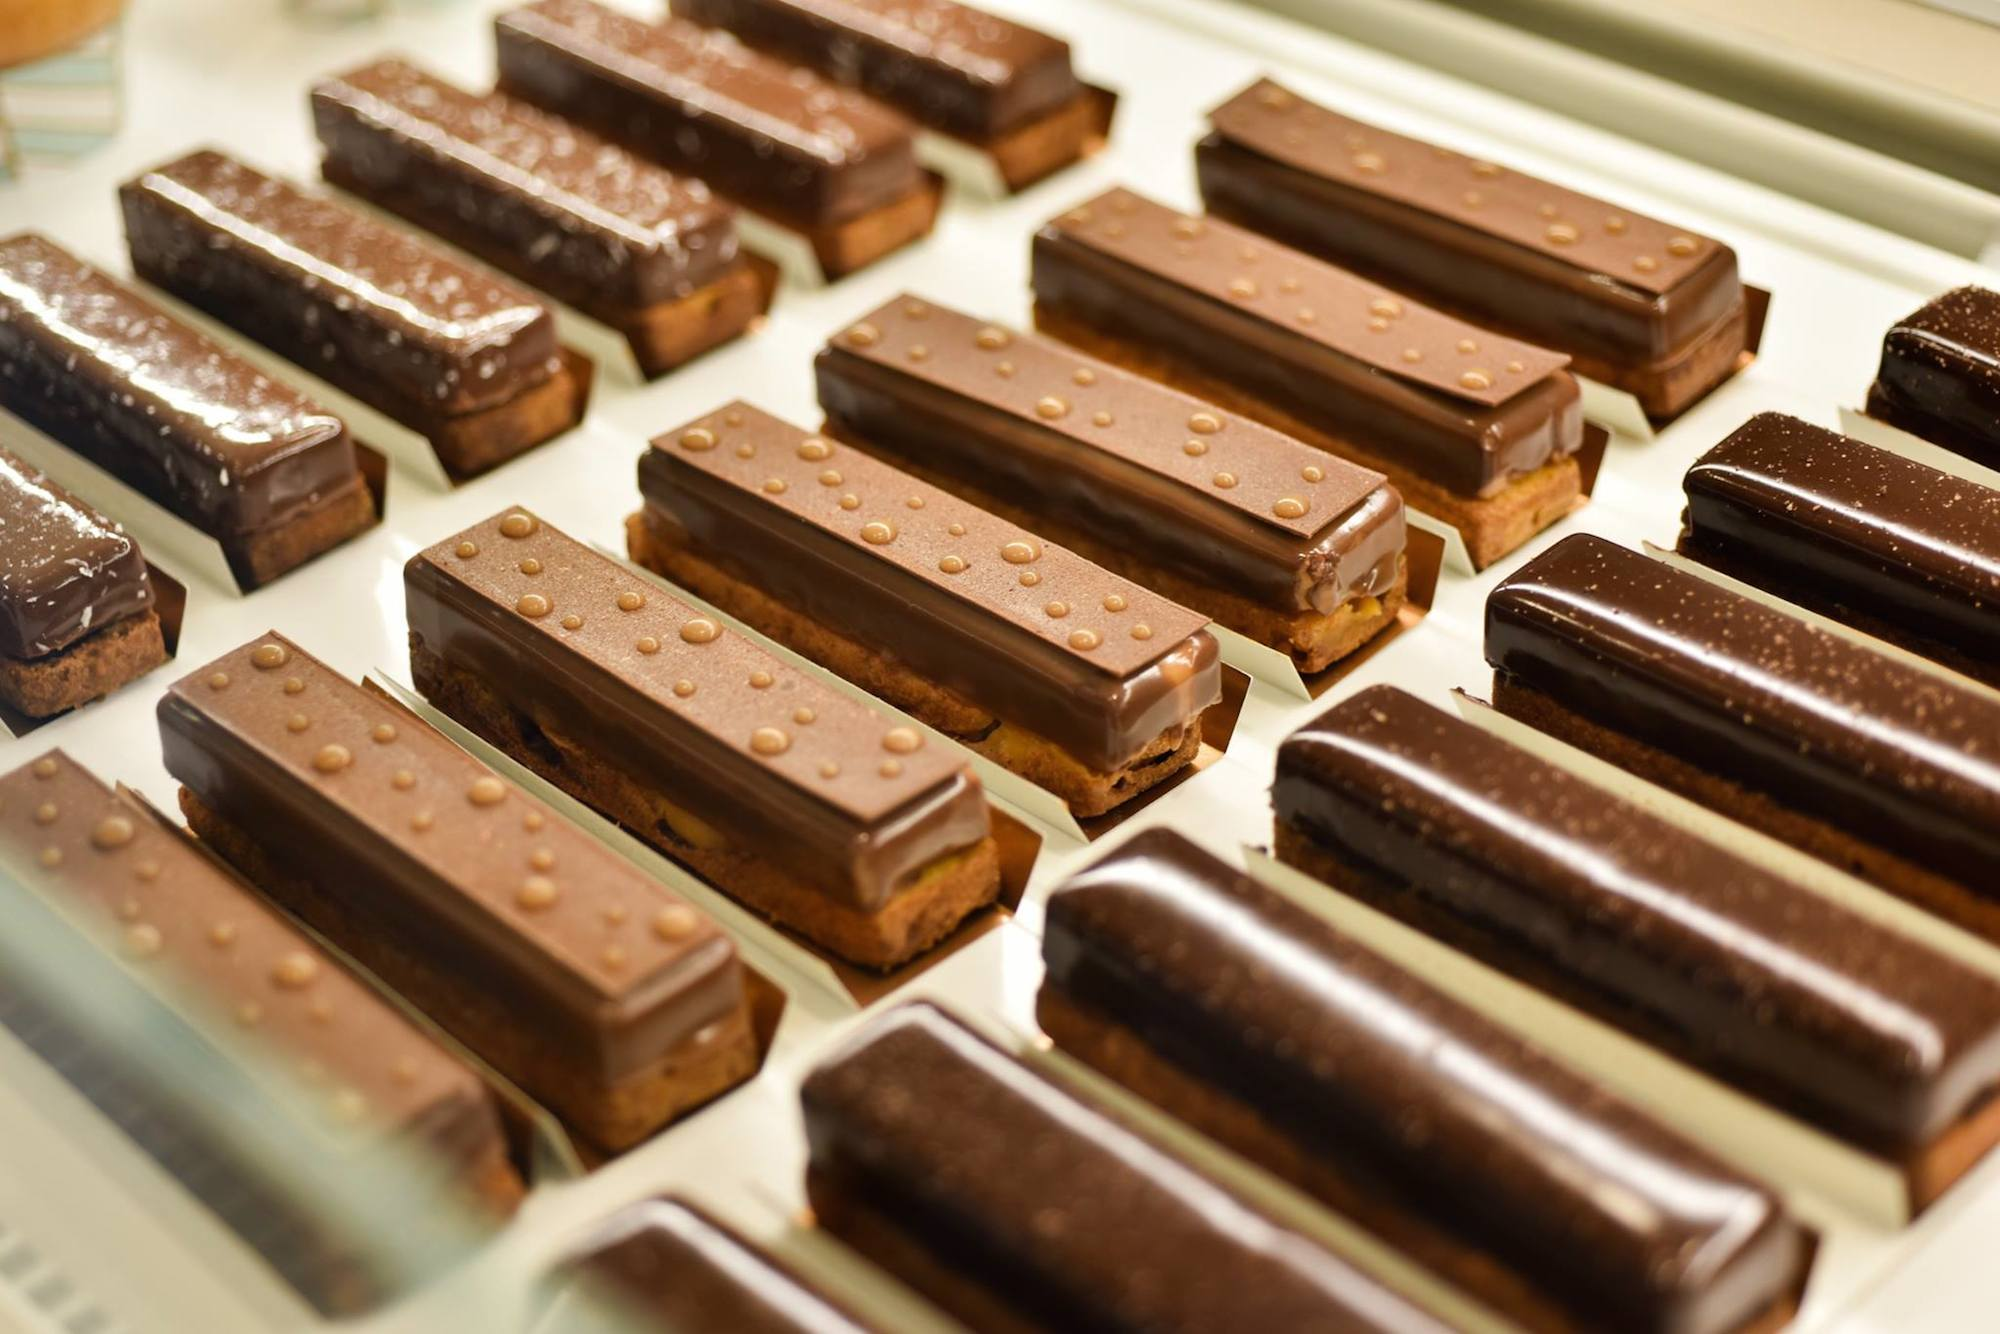 Food festivals in Paris in May include Taste of Paris where you can sample some of these chocolate pastries.